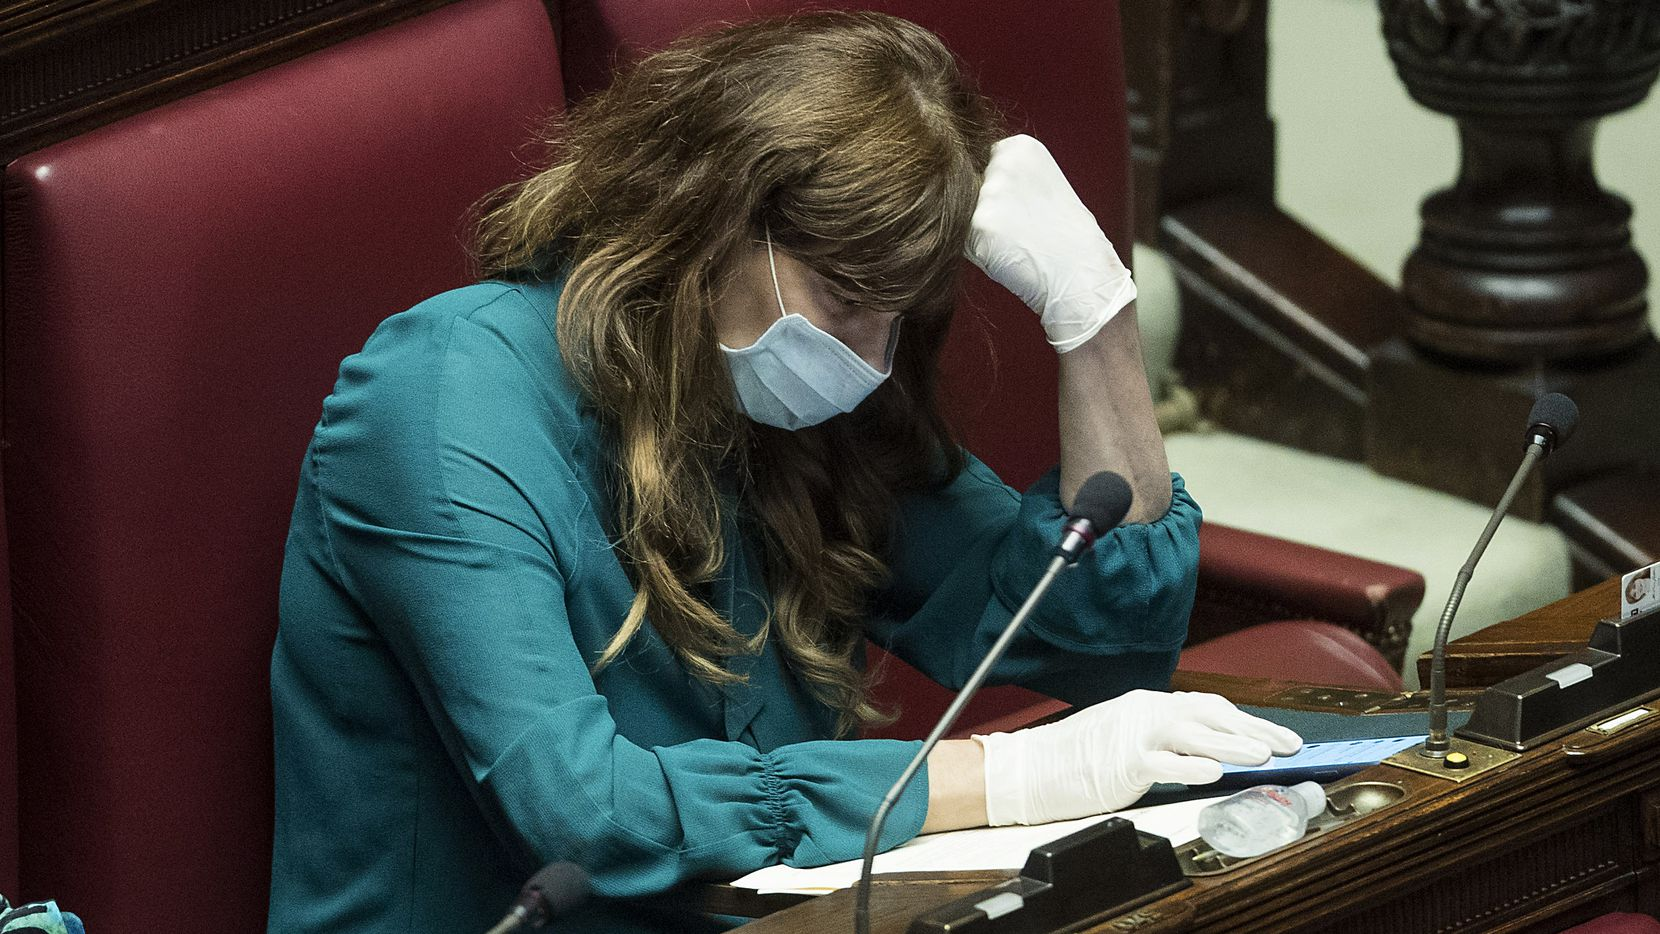 Italian lawmaker Maria Teresa Baladini wore a face mask and gloves during a session in Parliament on Wednesday.